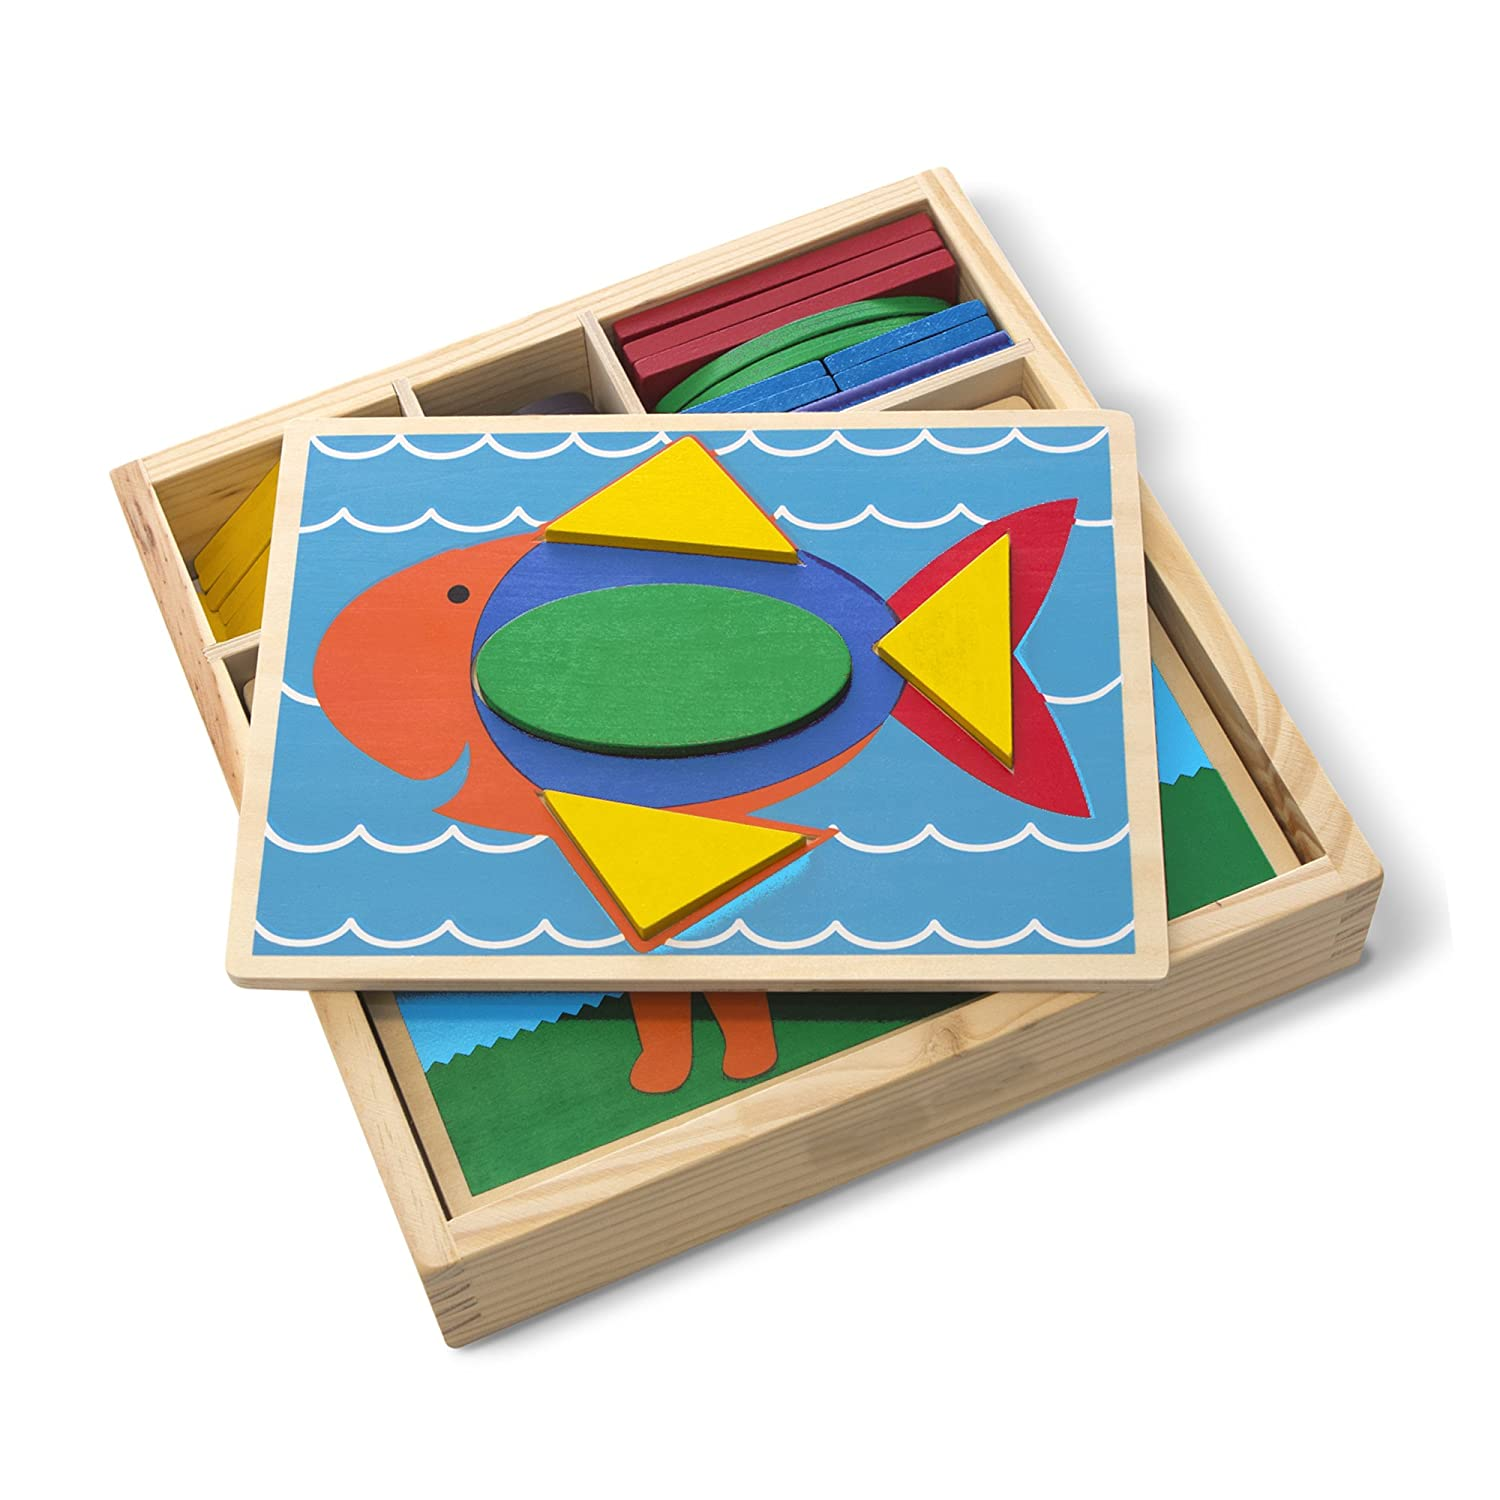 """Melissa /& Doug Beginner Wooden Pattern Blocks Educational Toy 10.65/"""" H x 10.65/"""" W x 2.3/"""" L 5 Double-Sided Scenes and 30 Shapes"""